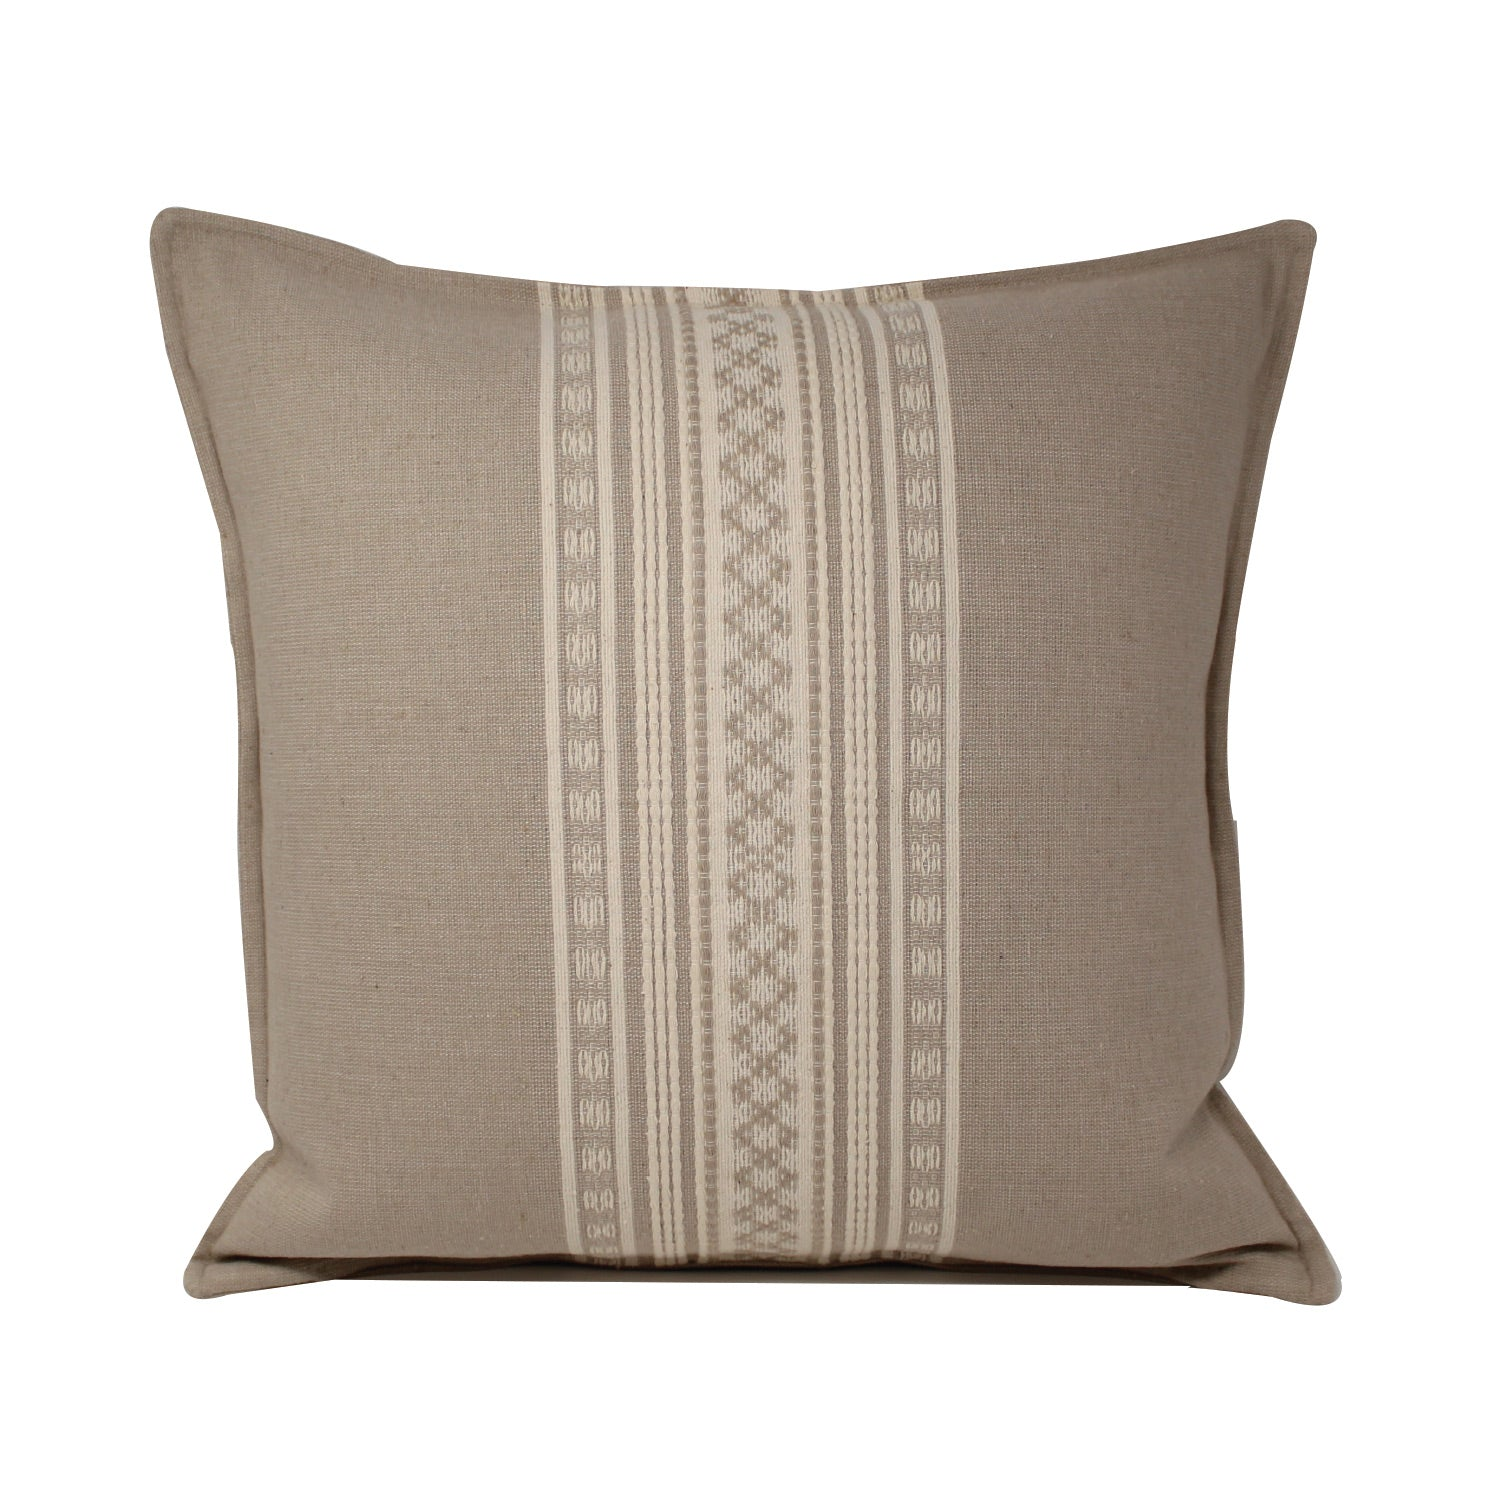 Nubari Handwoven Pillow - Oatmeal